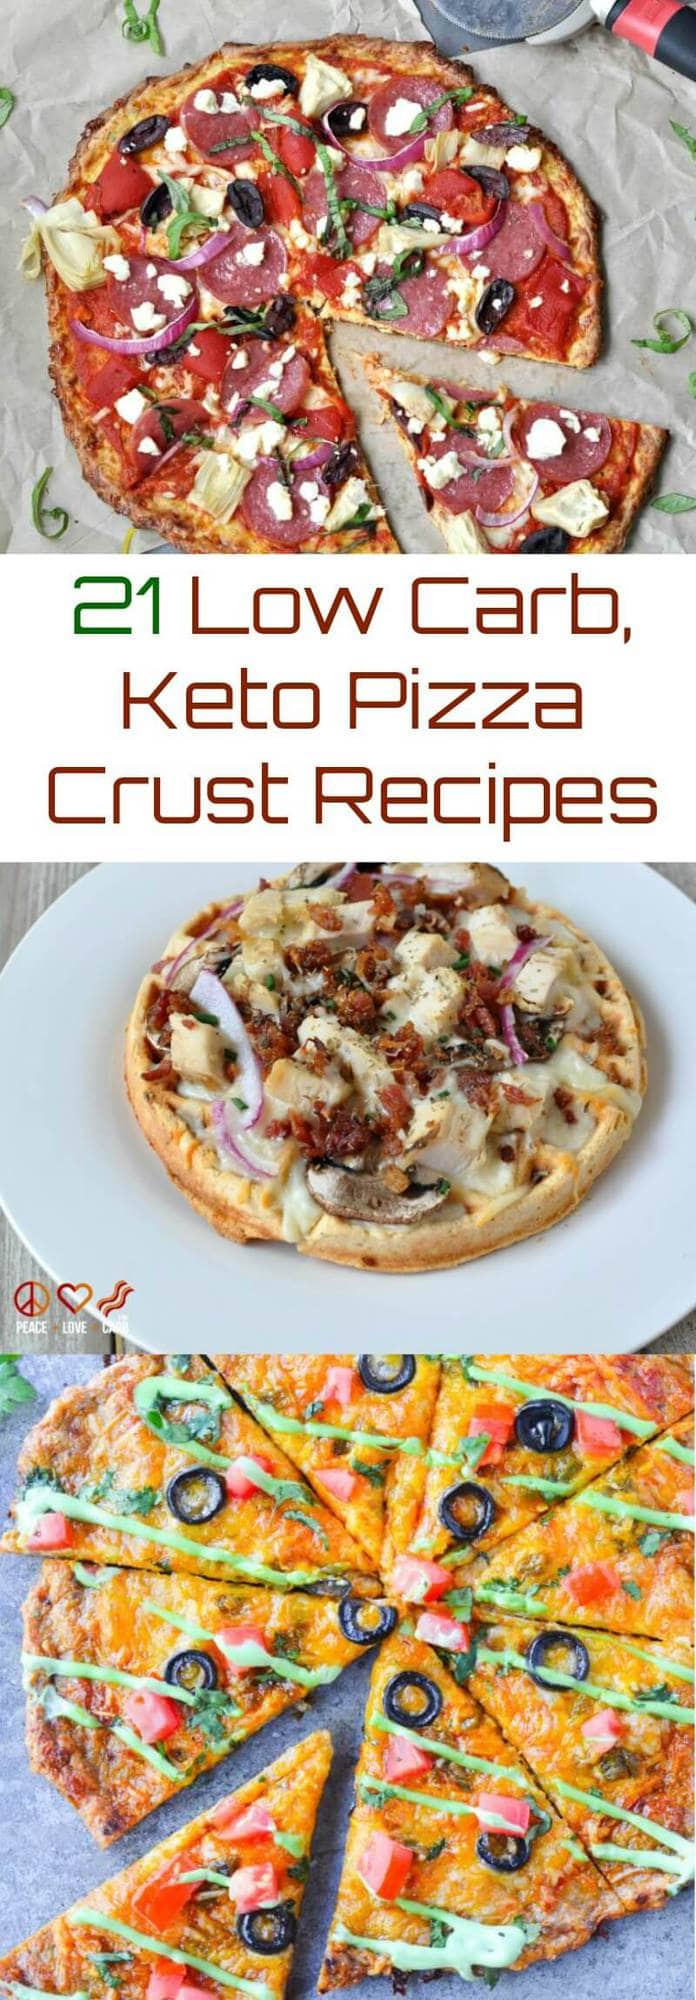 21 Low Carb, Keto Pizza Crust Recipes | Peace Love and Low Carb